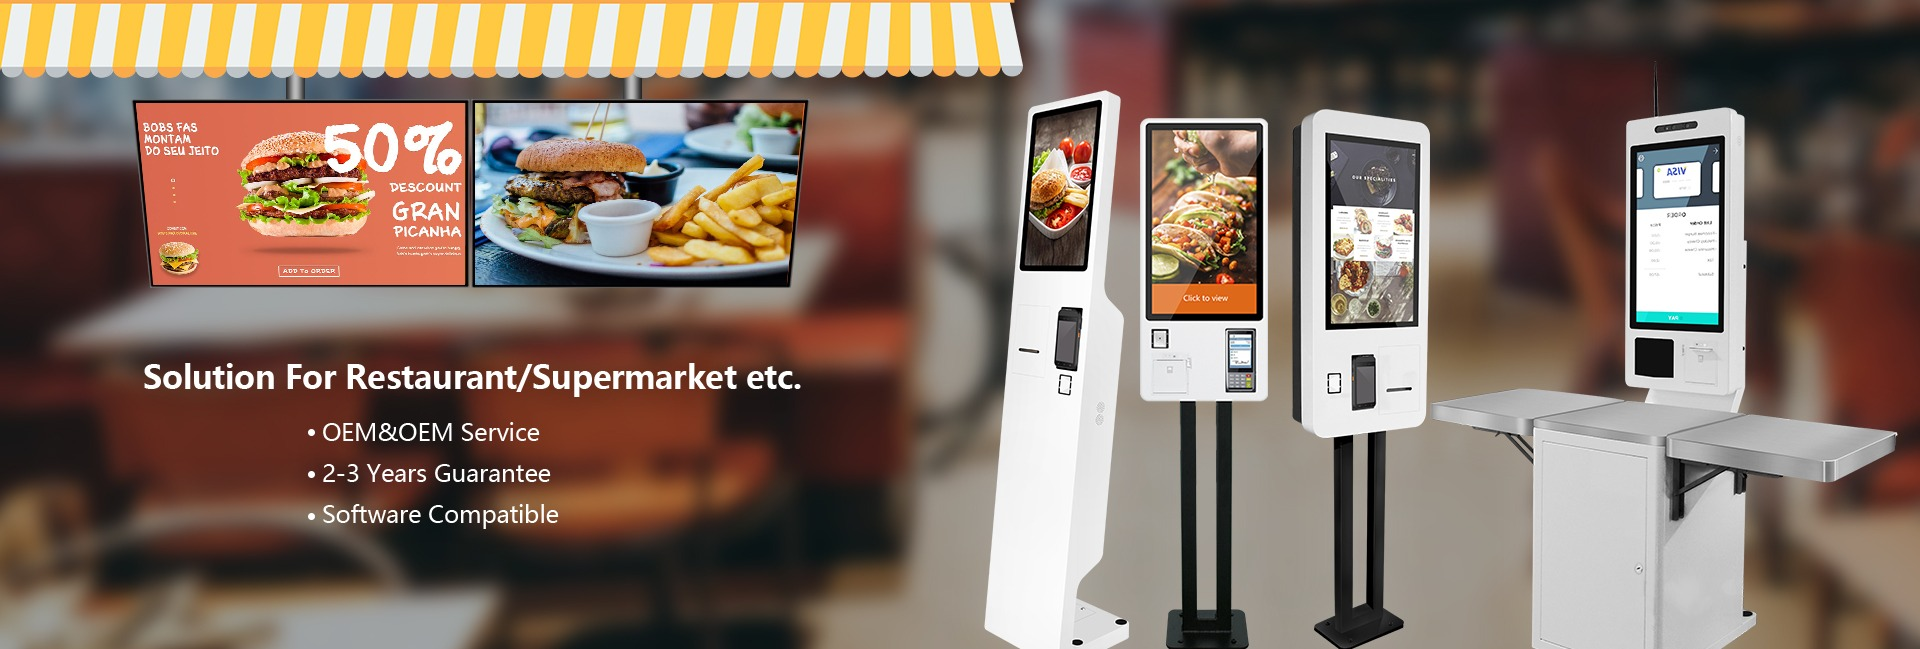 cafe app Digital Screens and self order kiosk